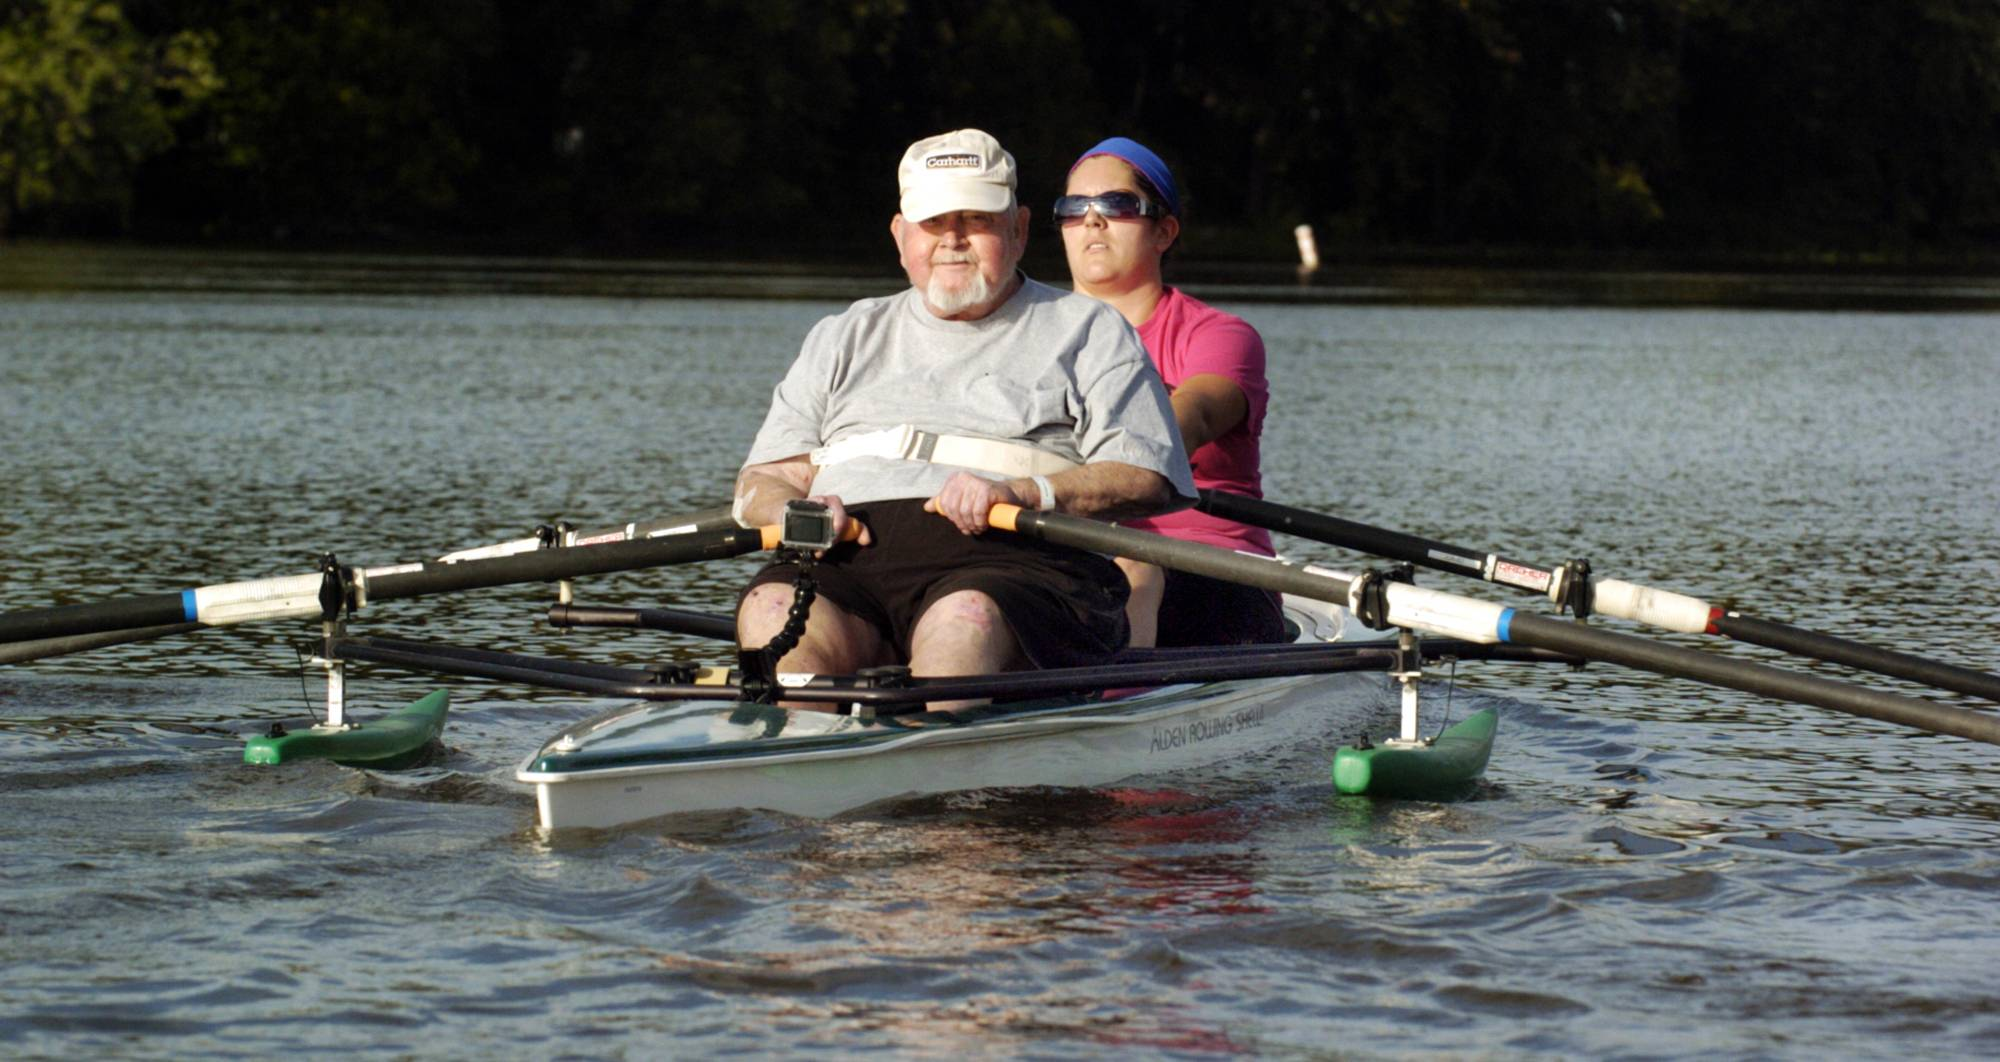 Hope Creek Care Center's rehabilitation patient, 72-year-old Tom Sisson fulfills a childhood dream by learning to scull a boat as he rows with instructor and Hope Creek physical therapist Nicole Taylor from Aledo in the waters of the Mississippi River near the Sylvan Boathouse in Moline.